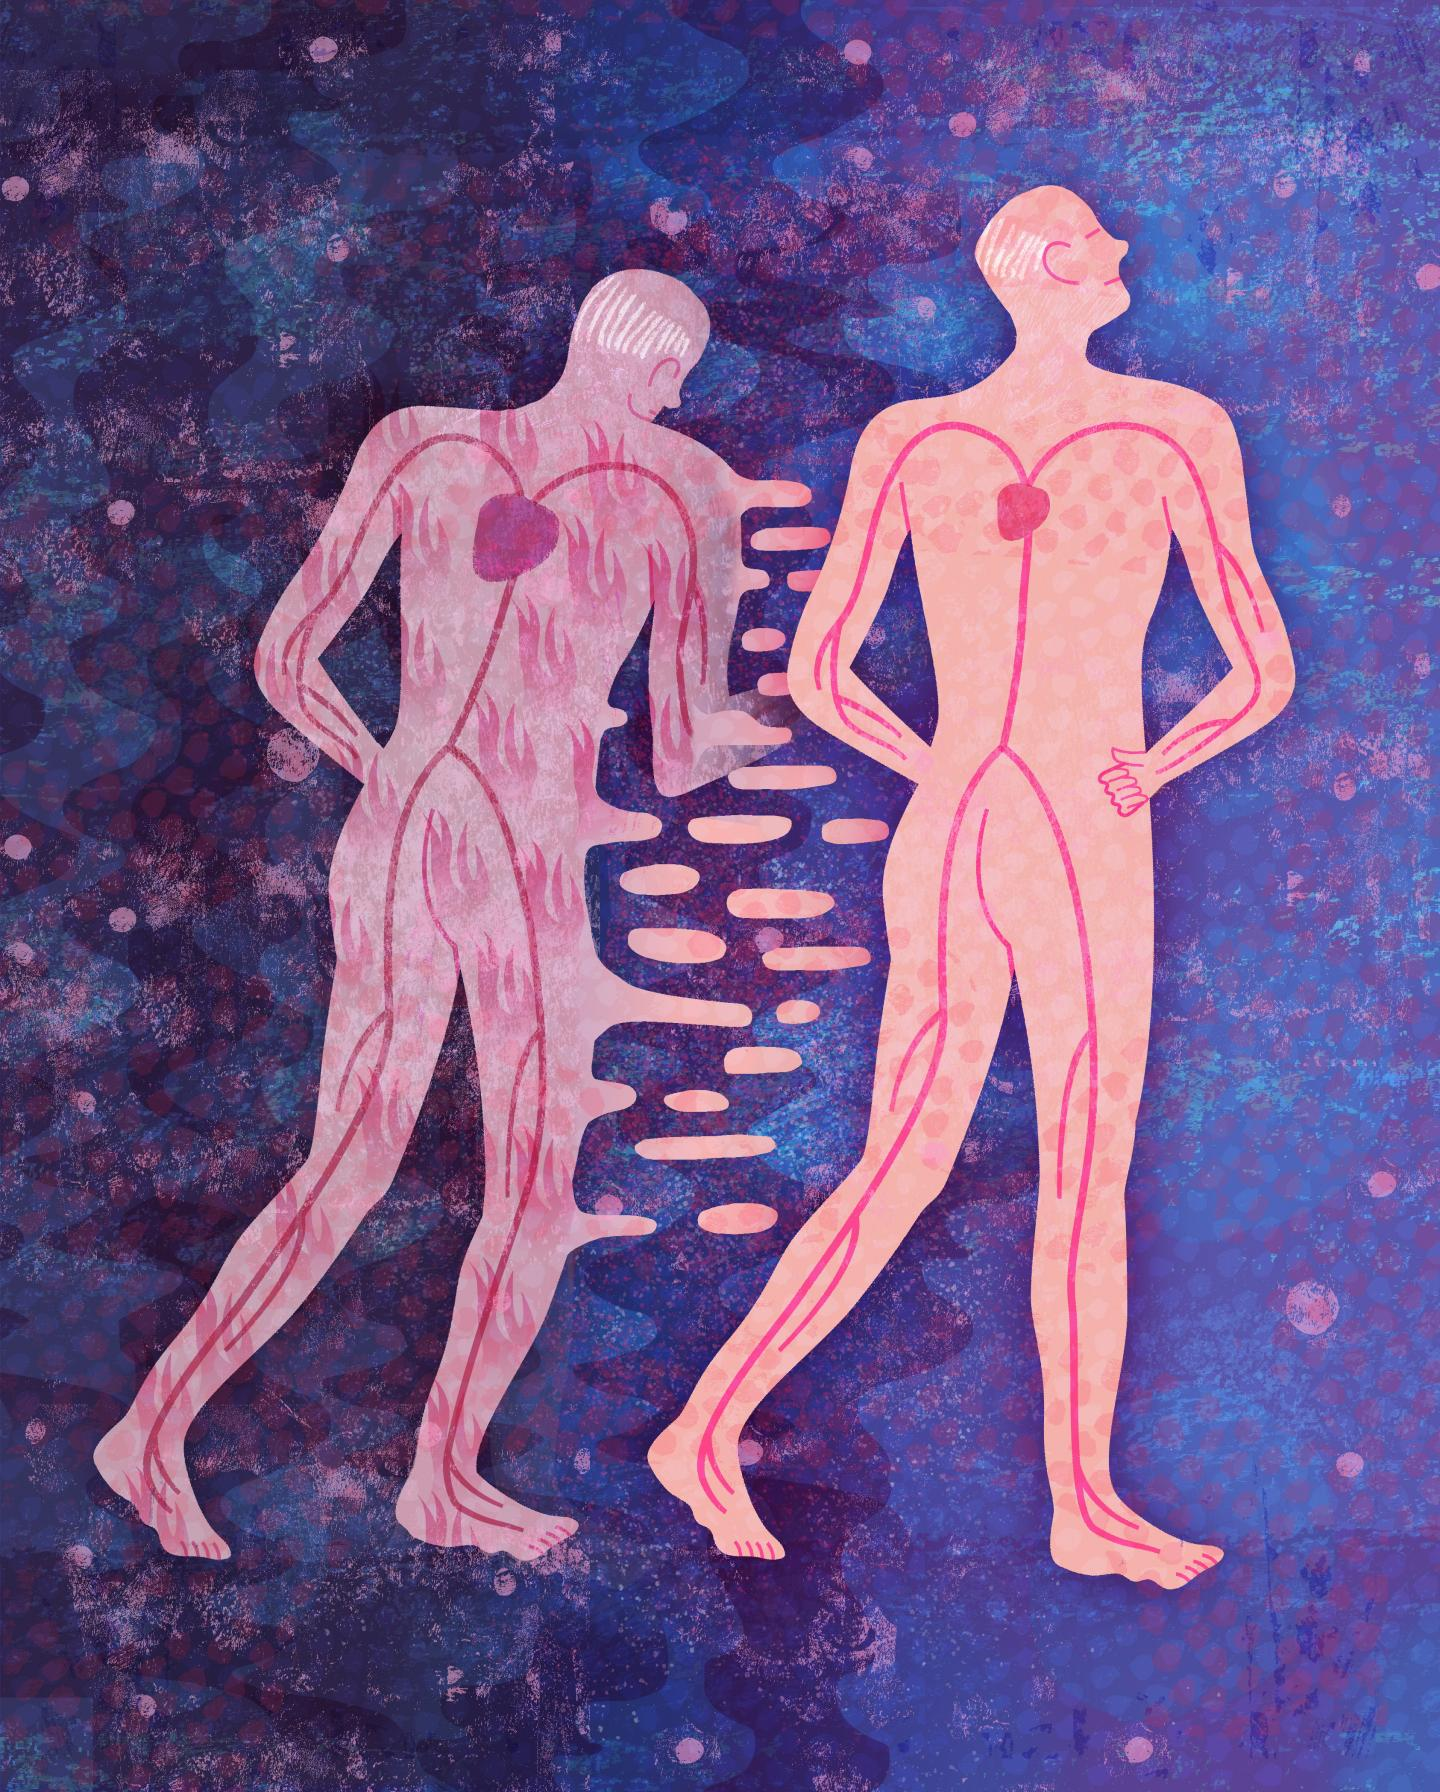 iAge predicts immunological health and chronic diseases of aging